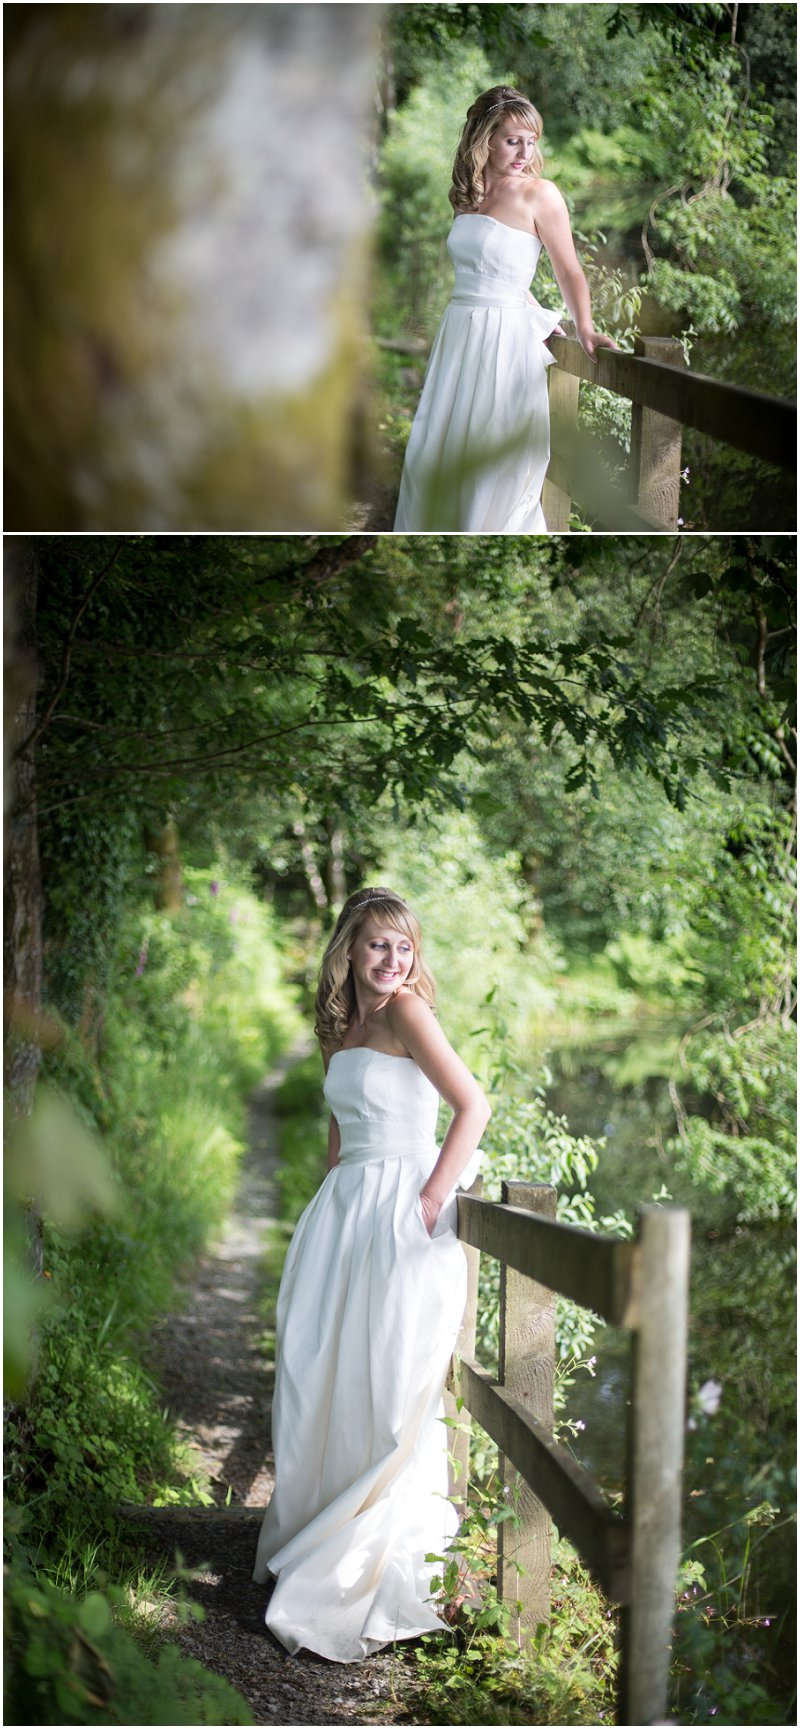 Stunning bride in the grounds of Linthwaite House Wedding Photographer